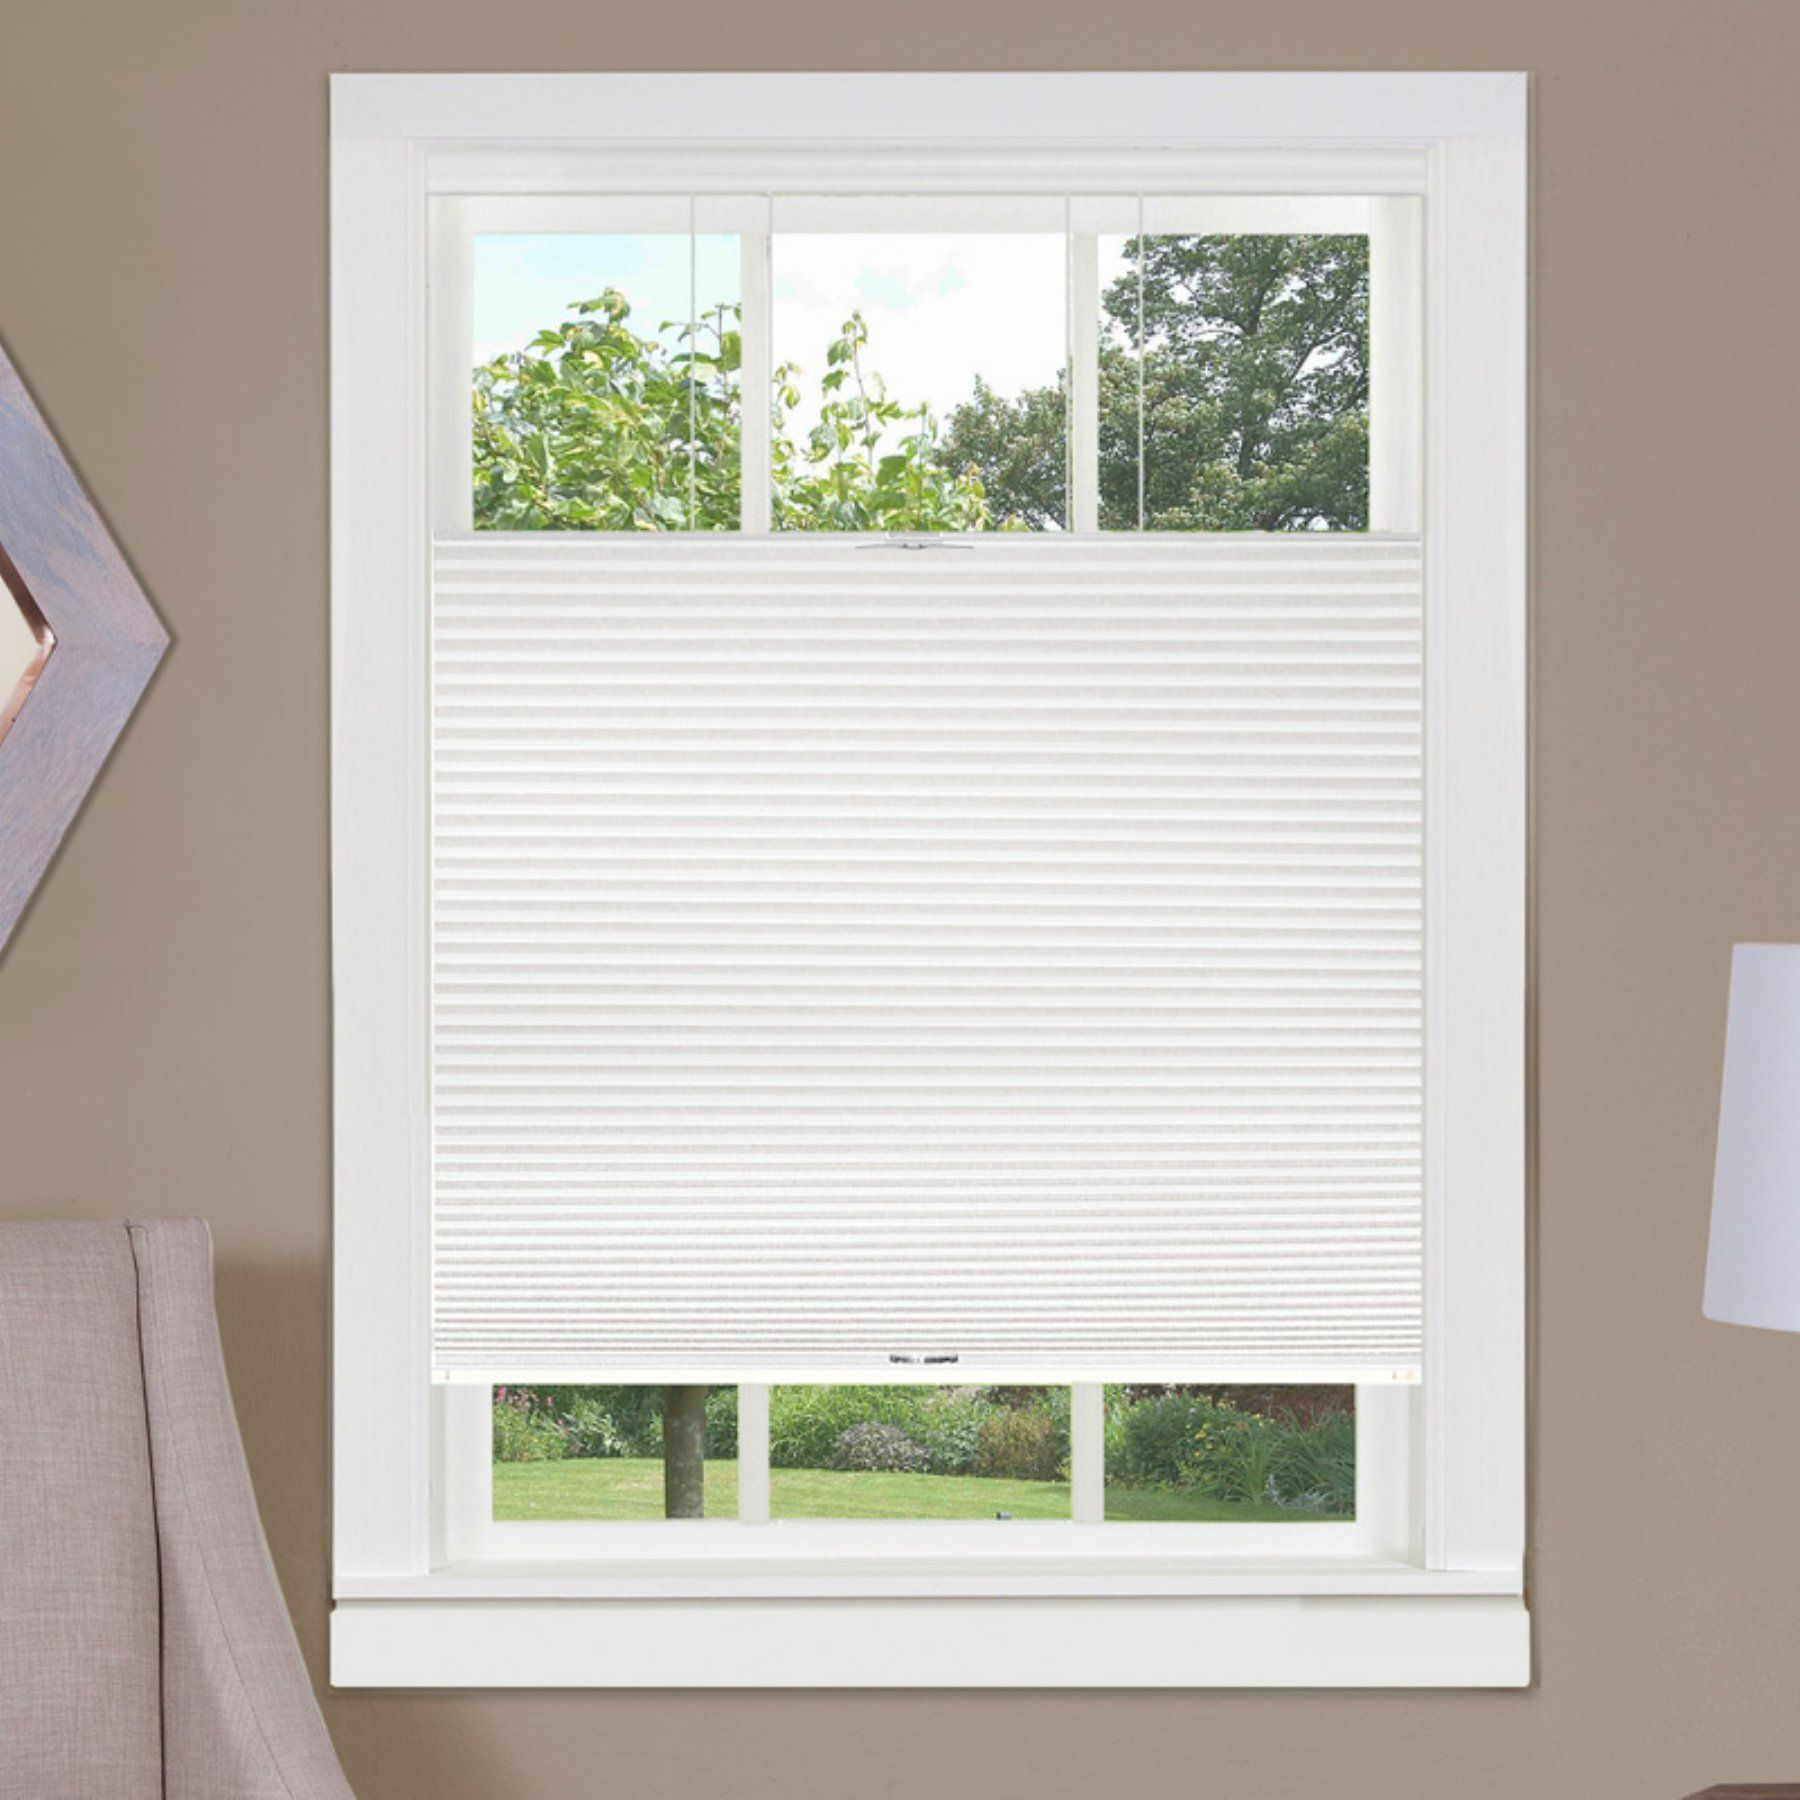 image of cdbossington in design window interior ideas available shade silhouette hunter cordless blinds roman great